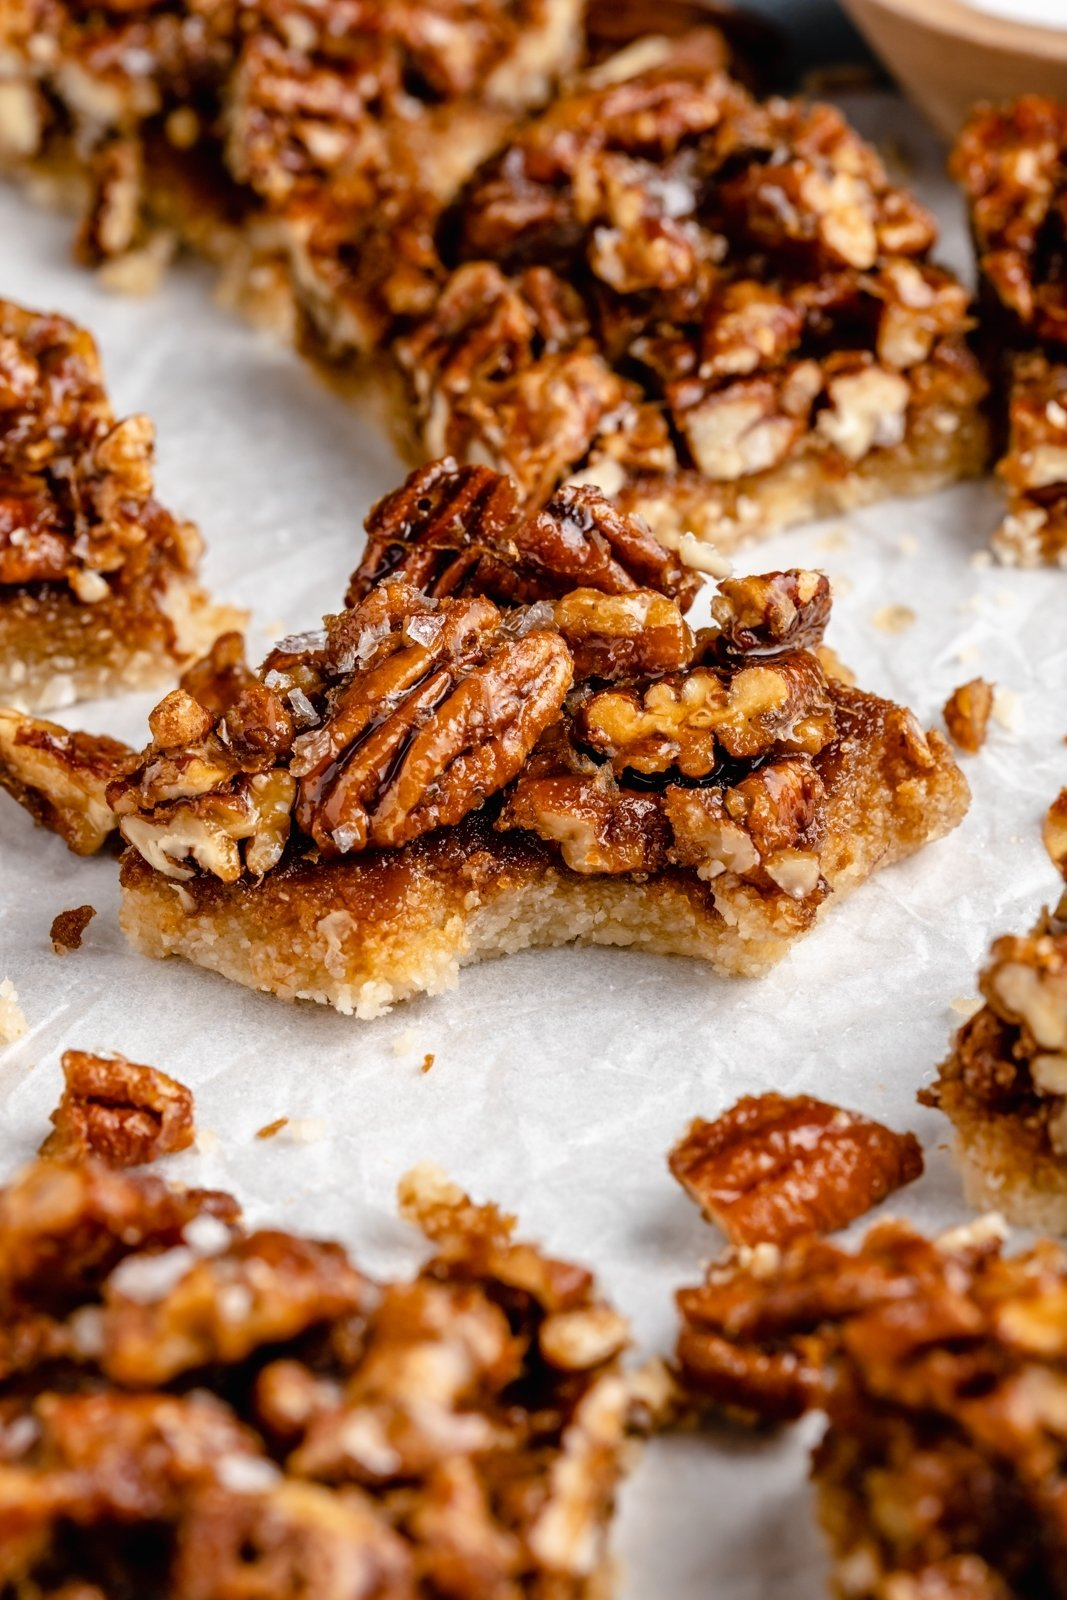 paleo pecan pie bar with a bite taken out